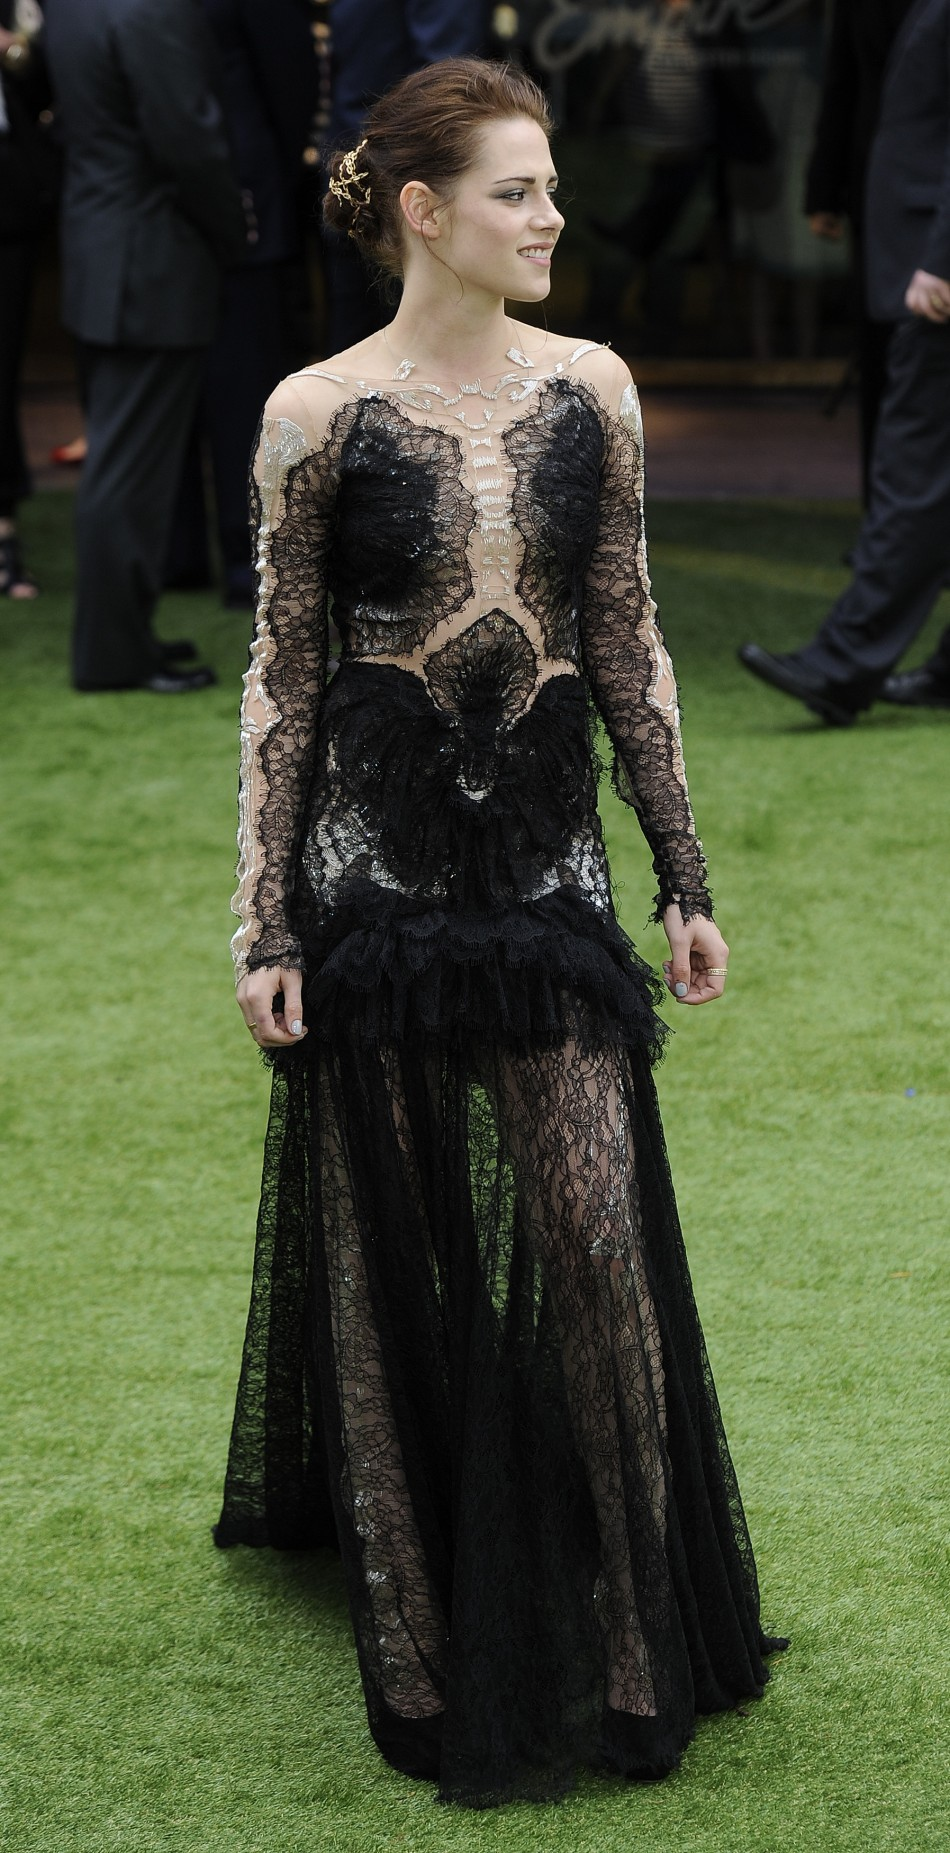 Actress Kristen Stewart poses for photographers as she arrives for the world premiere of quotSnow White and the Huntsmanquot at Leicester Square in London